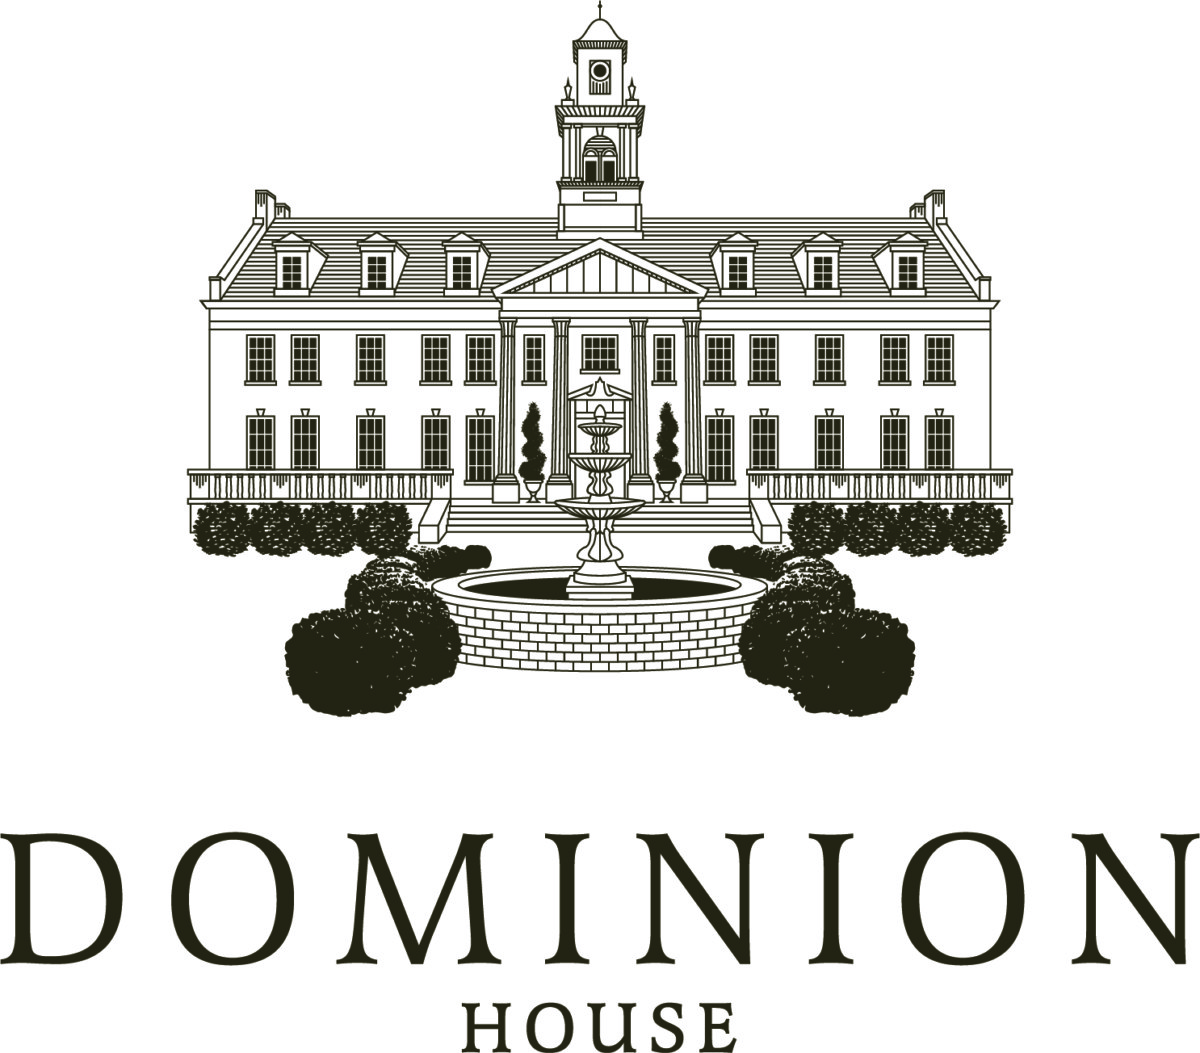 DominionHouse-logo-black.jpg